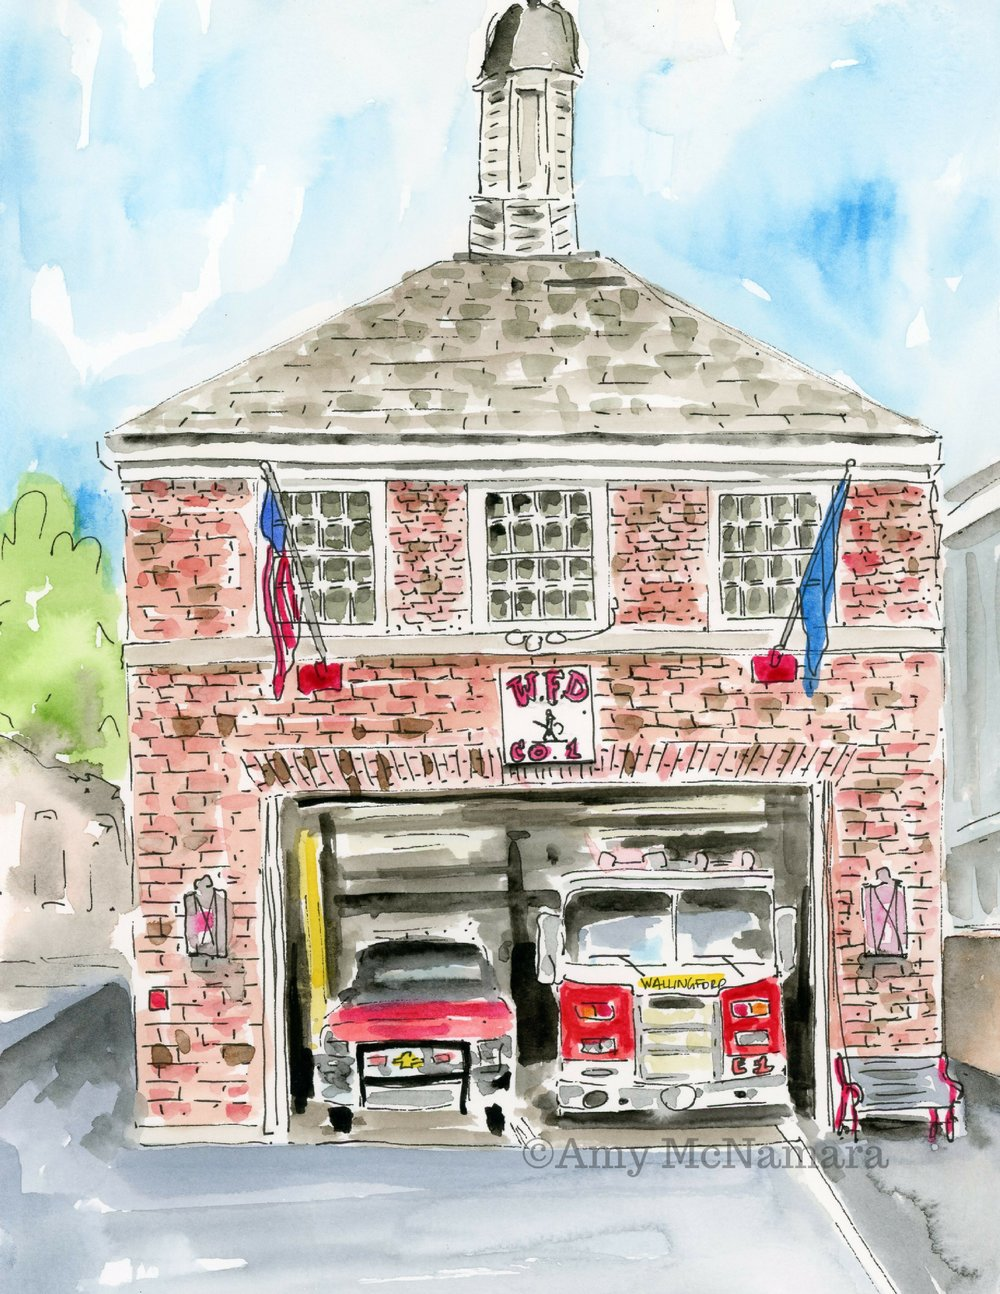 no. 273 Firehouse (Wallingford Series)